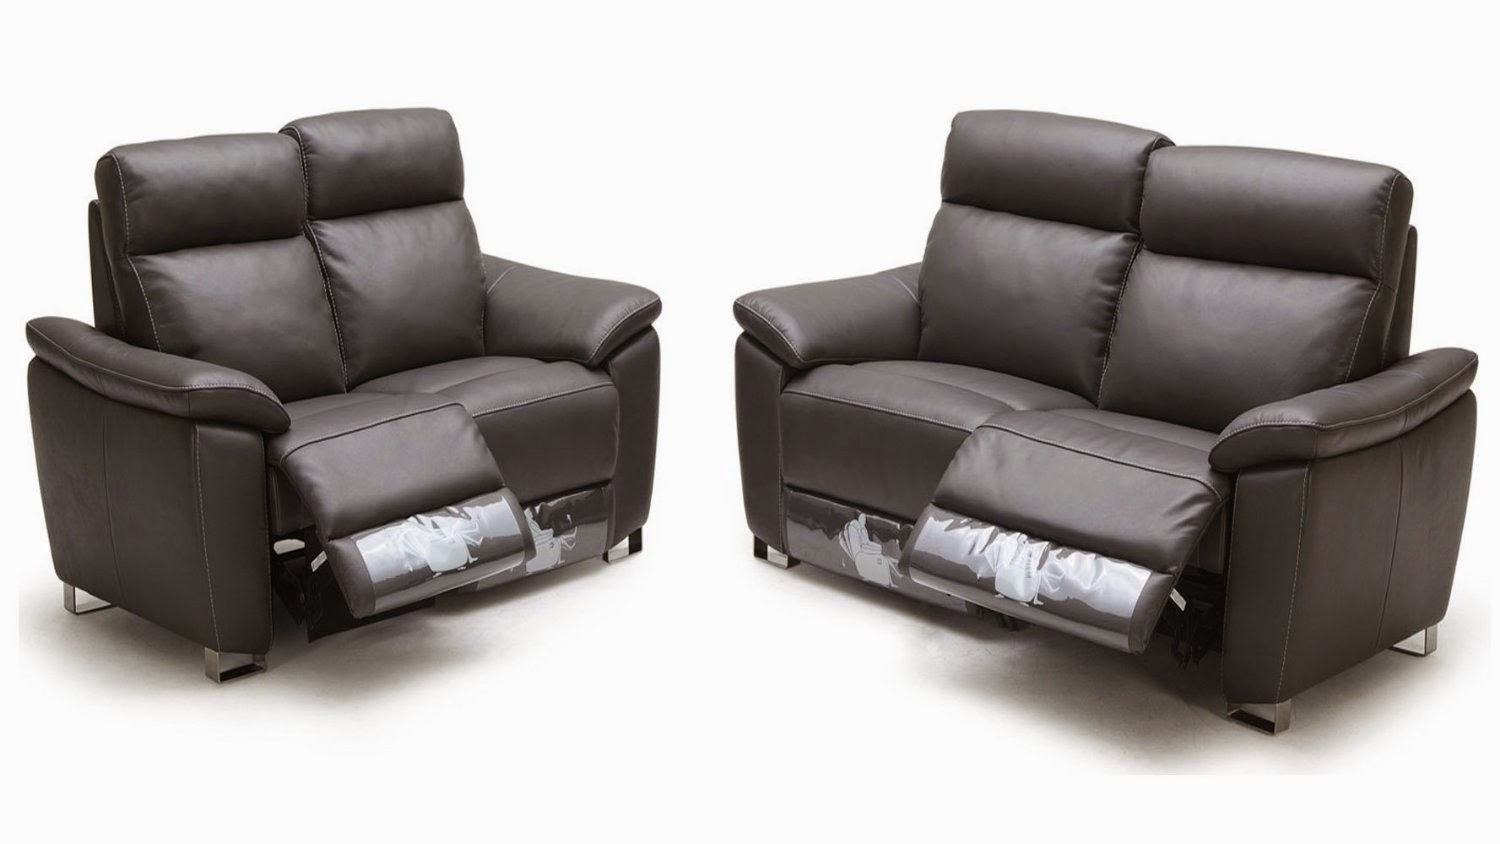 Best reclining sofa for the money two seater reclining leather sofas Leather loveseat recliners